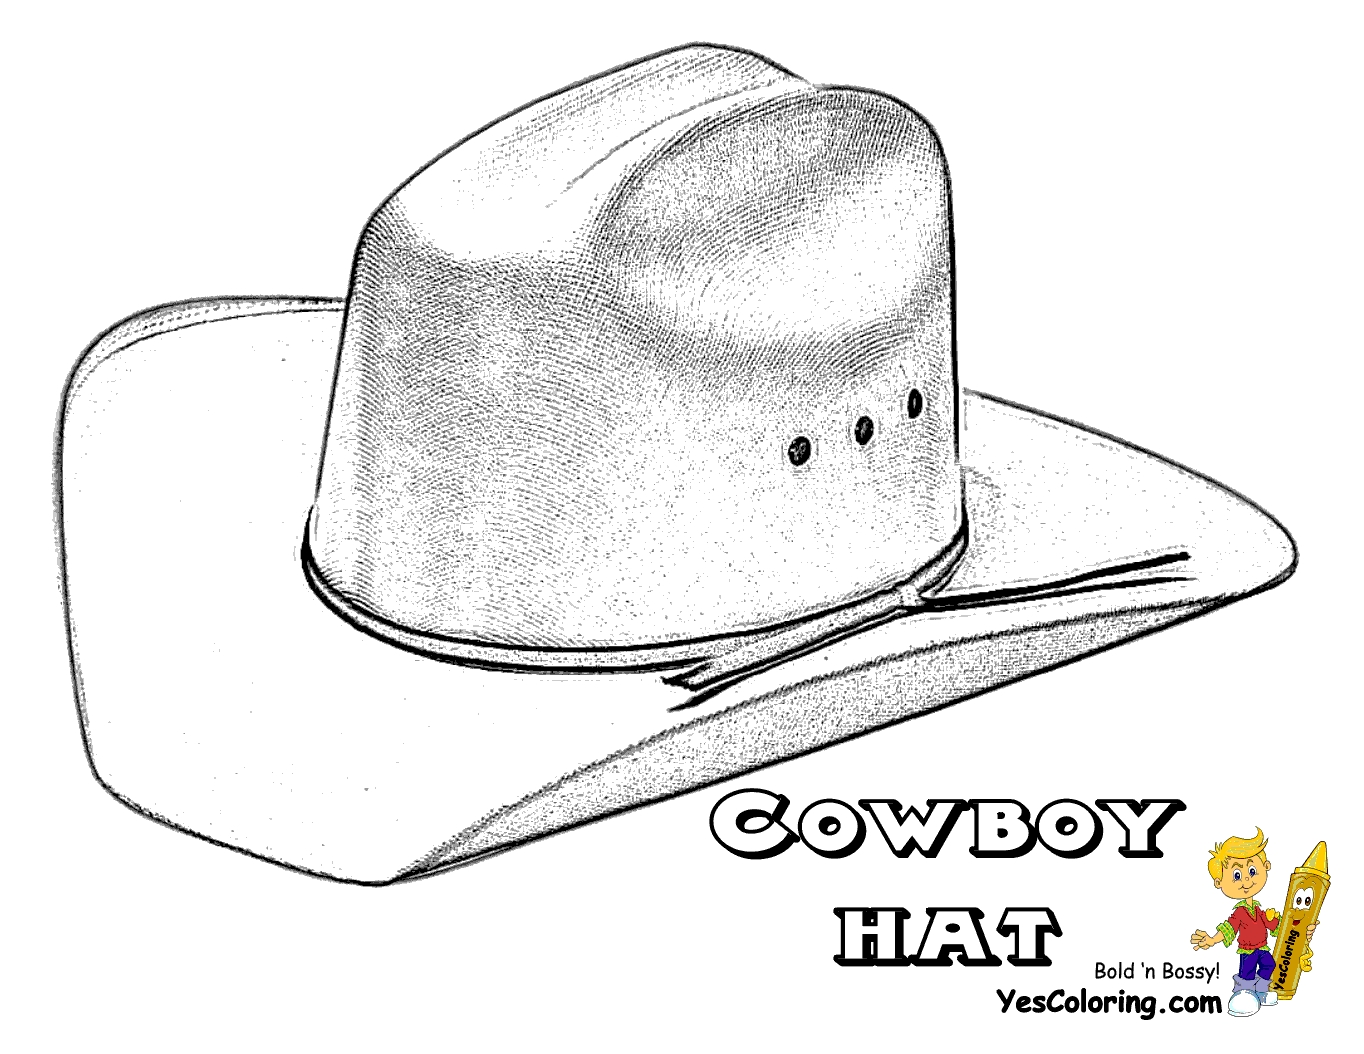 cowboy hat coloring page - cowboy hats cowboys and coloring pages on pinterest inside cowboy hat coloring page